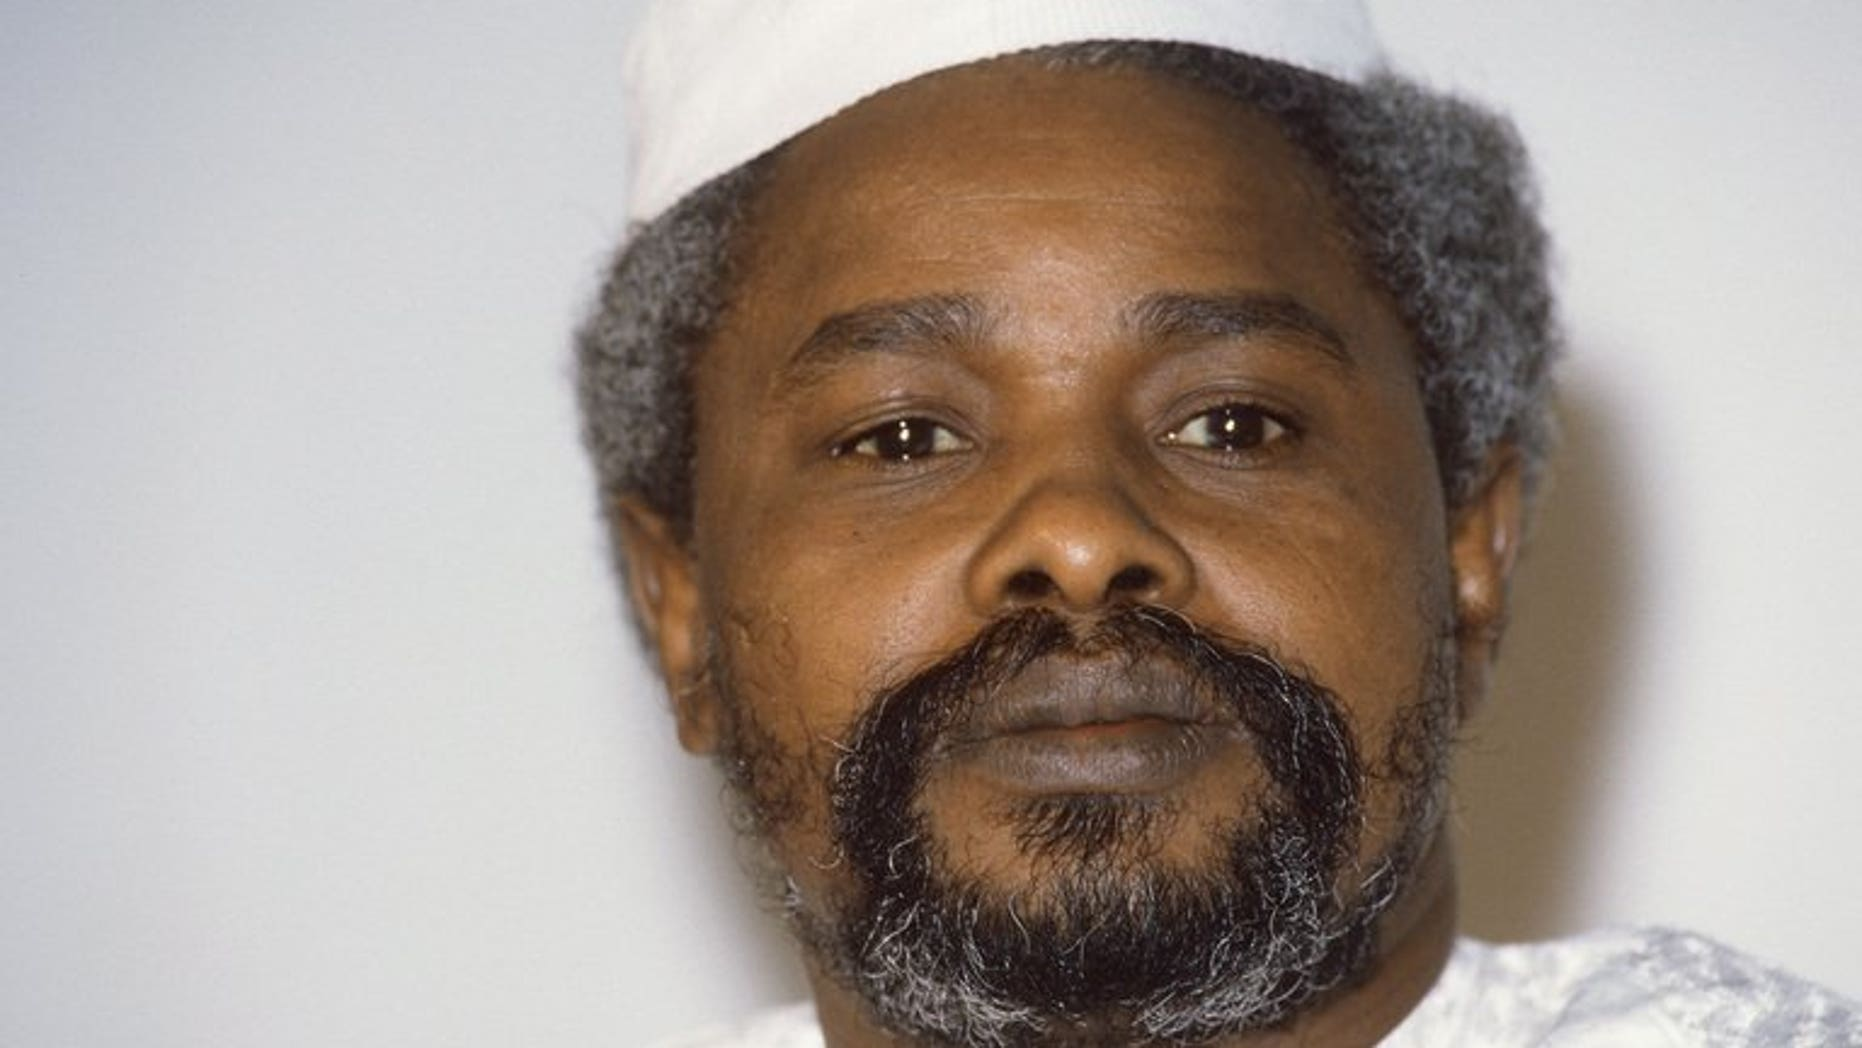 File picture shows Chad's then president Hissene Habre in N'Djamena on January 17, 1987. Chad's former dictator began his first full day in custody on Monday after his arrest in Senegal by investigators planning to put him on trial for crimes against humanity.